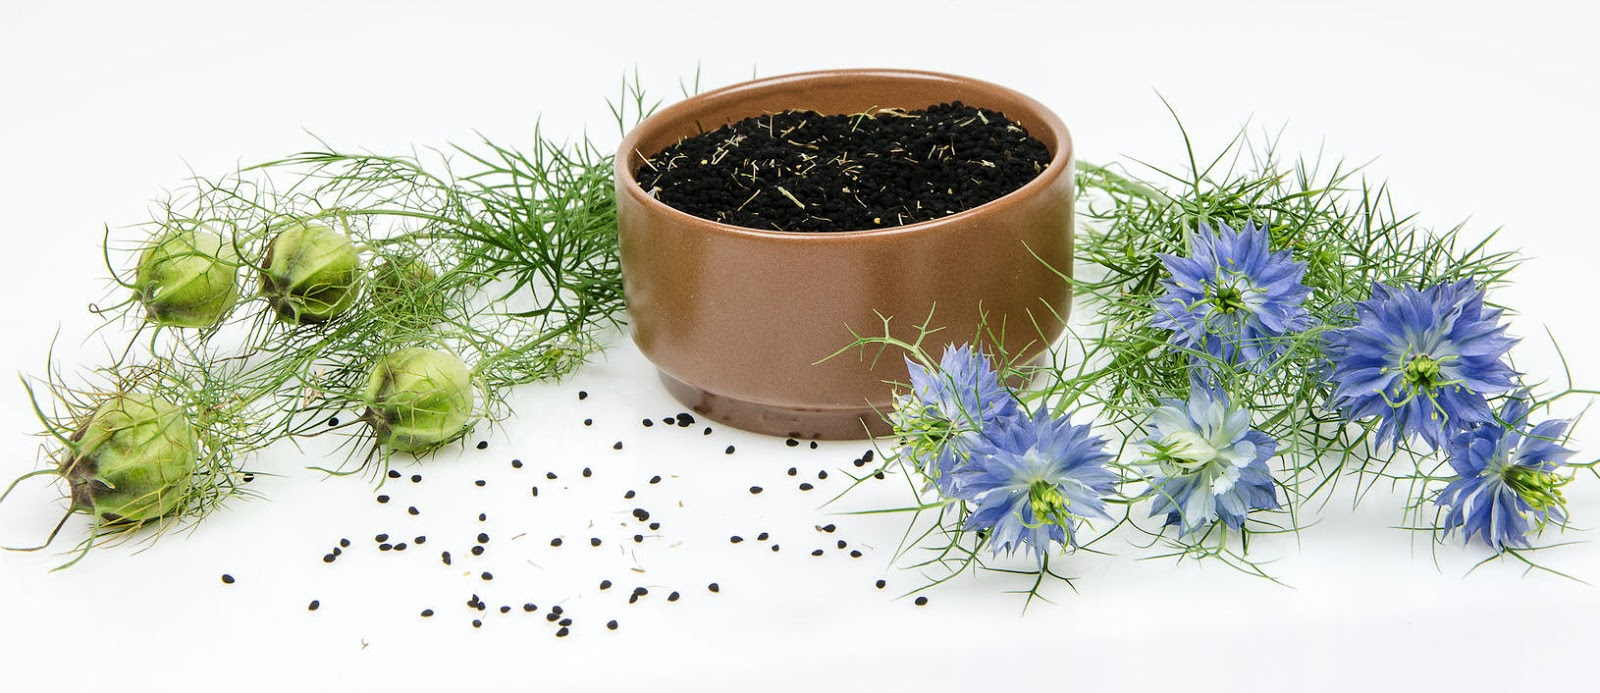 nigella sativa research papers Search for more papers by assessment of protective potential of nigella sativa oil against carbendazim environmental science and pollution research.